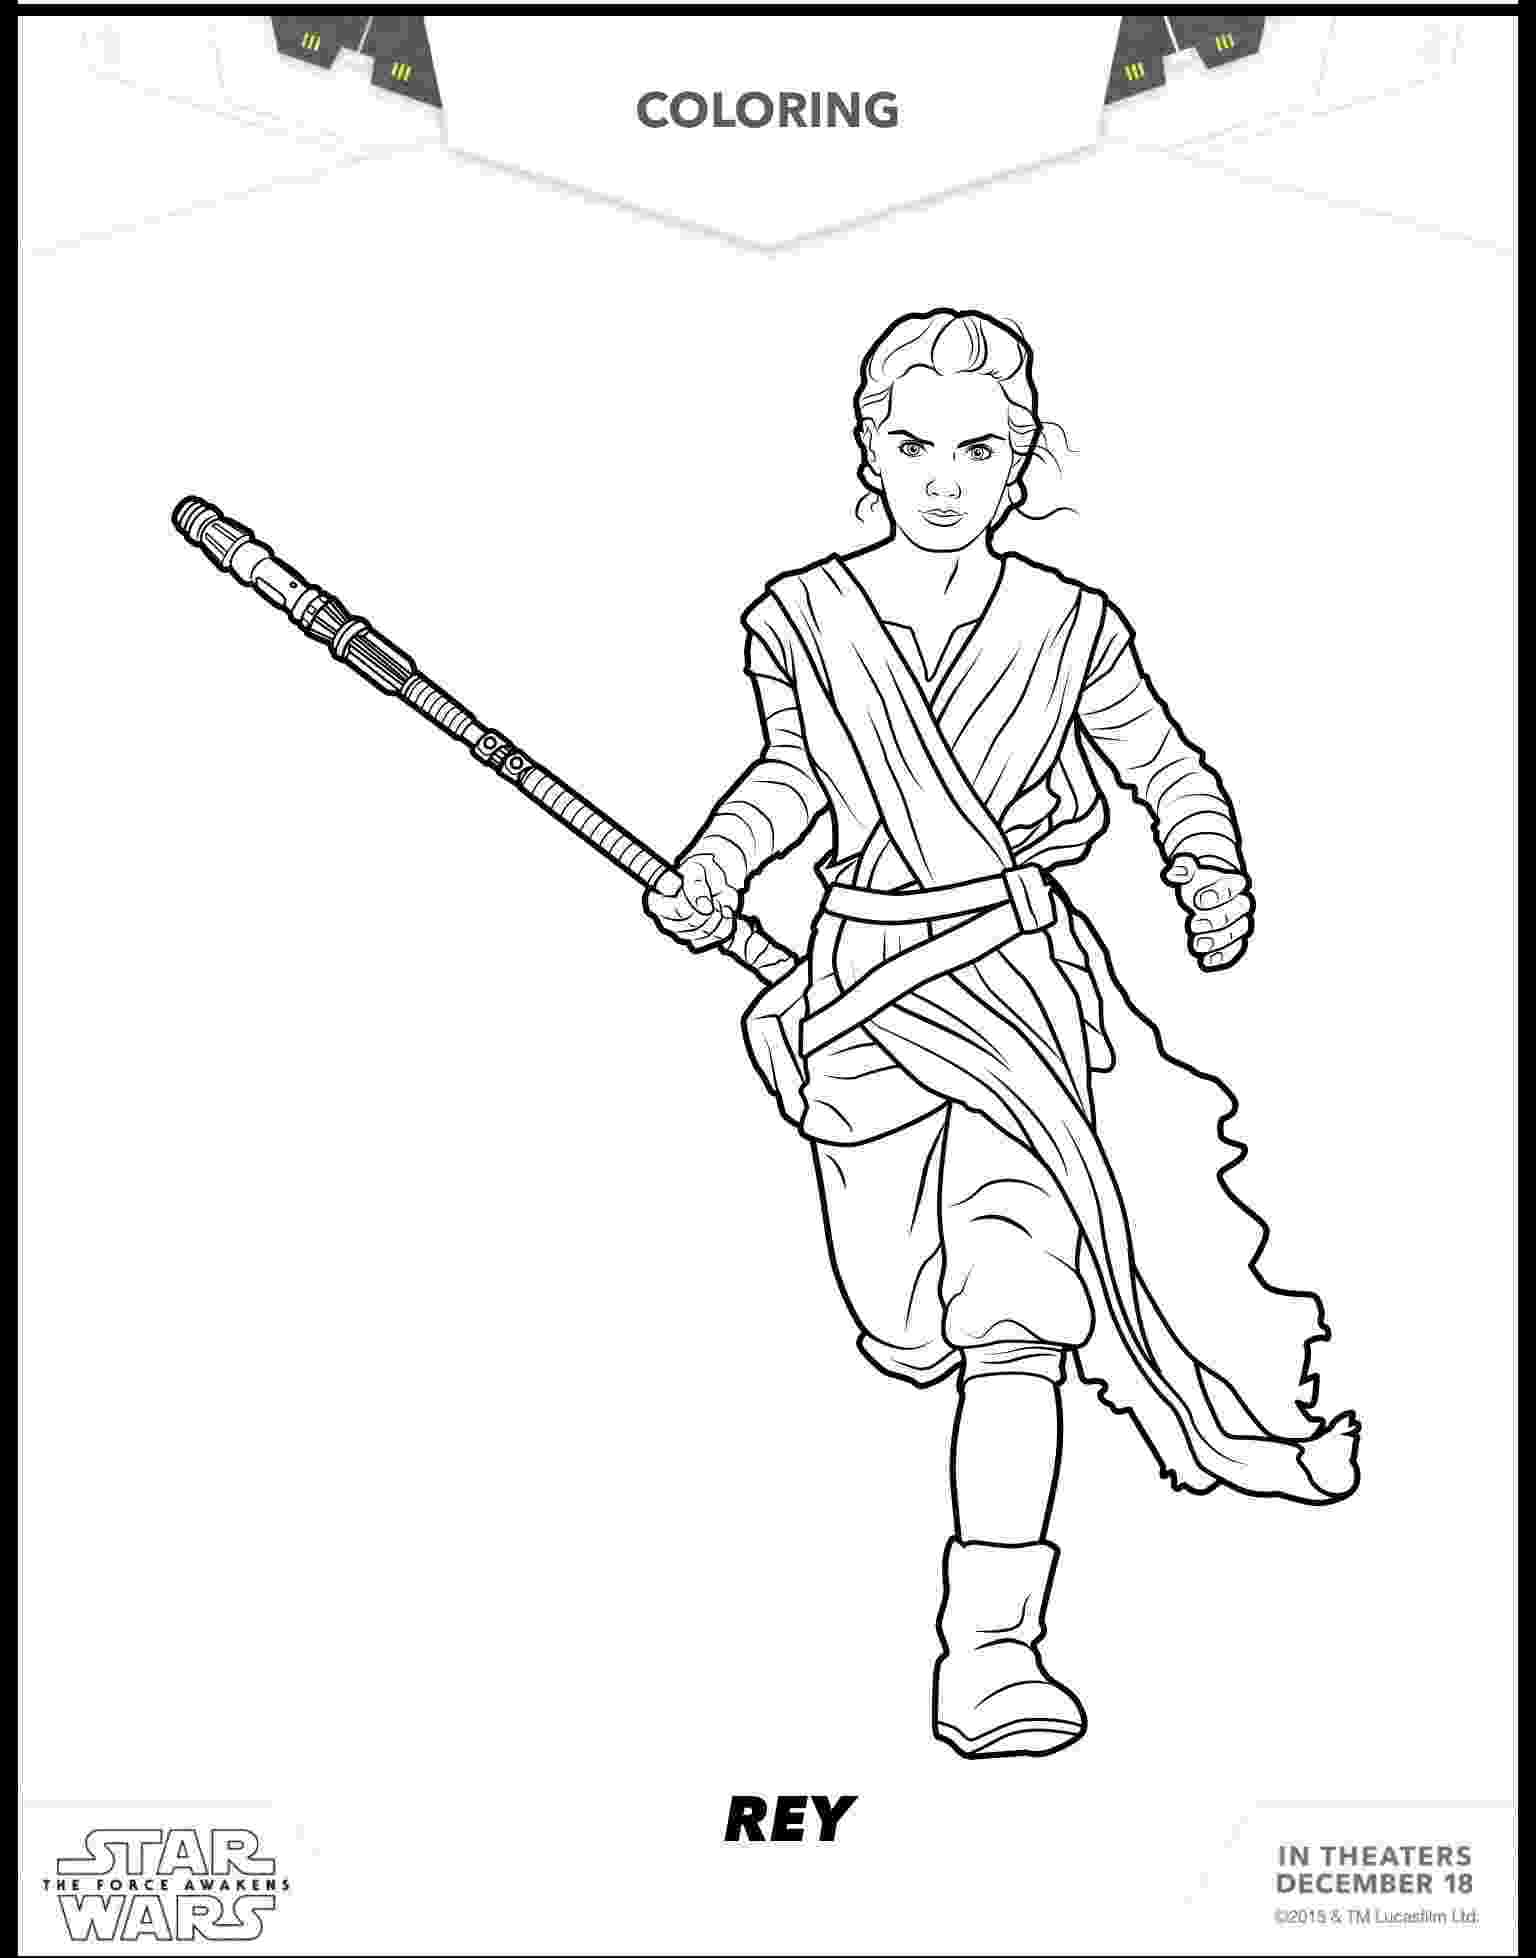 star wars printables solo a star wars story coloring pages and activity sheets wars star printables